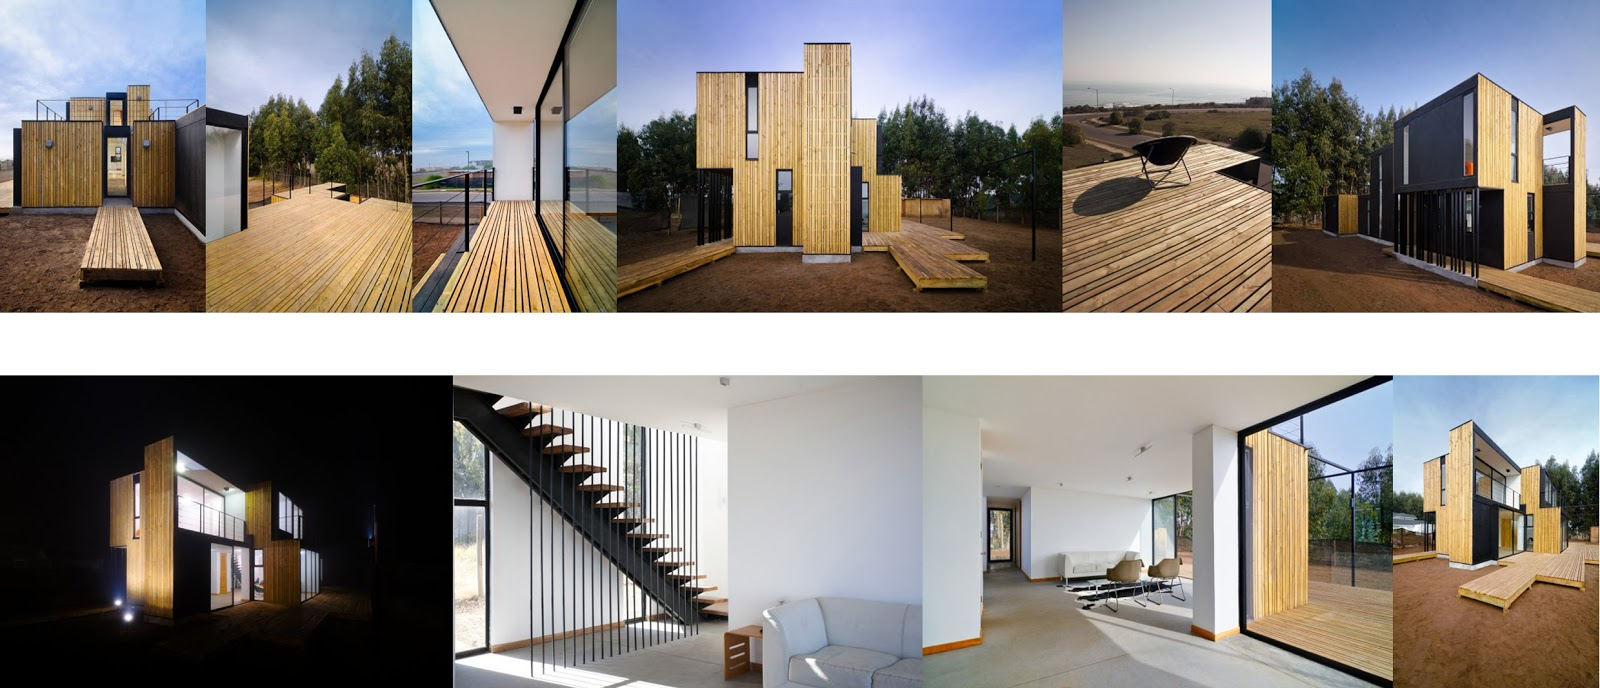 Chilean architecture sip panel house architecture today for Sip panel house